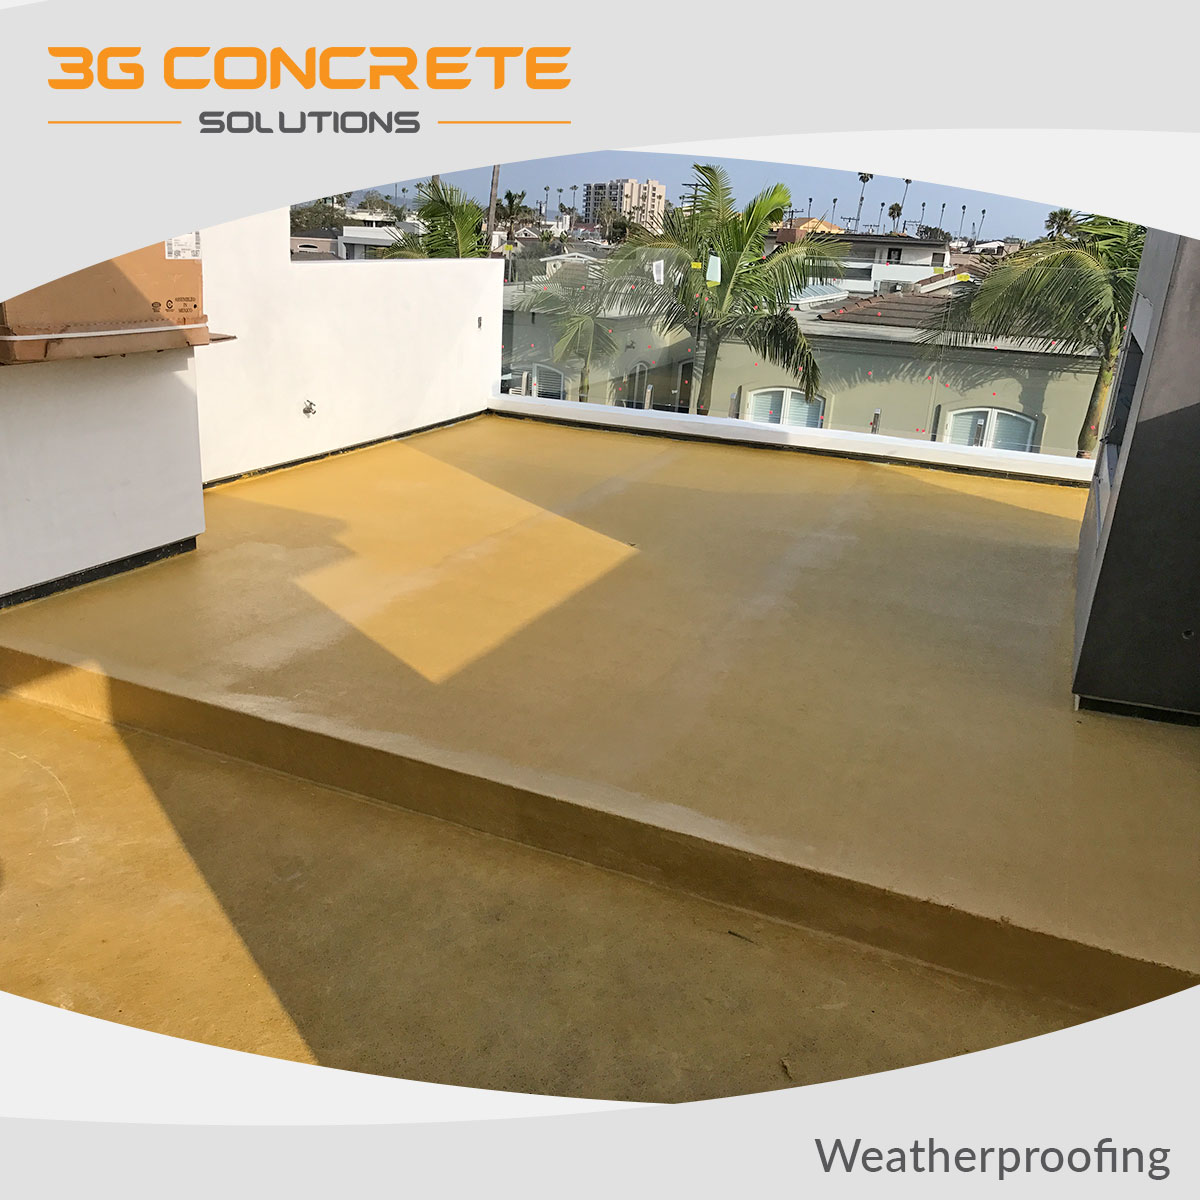 Concrete Tiling Or Deck Tiles What S Best For